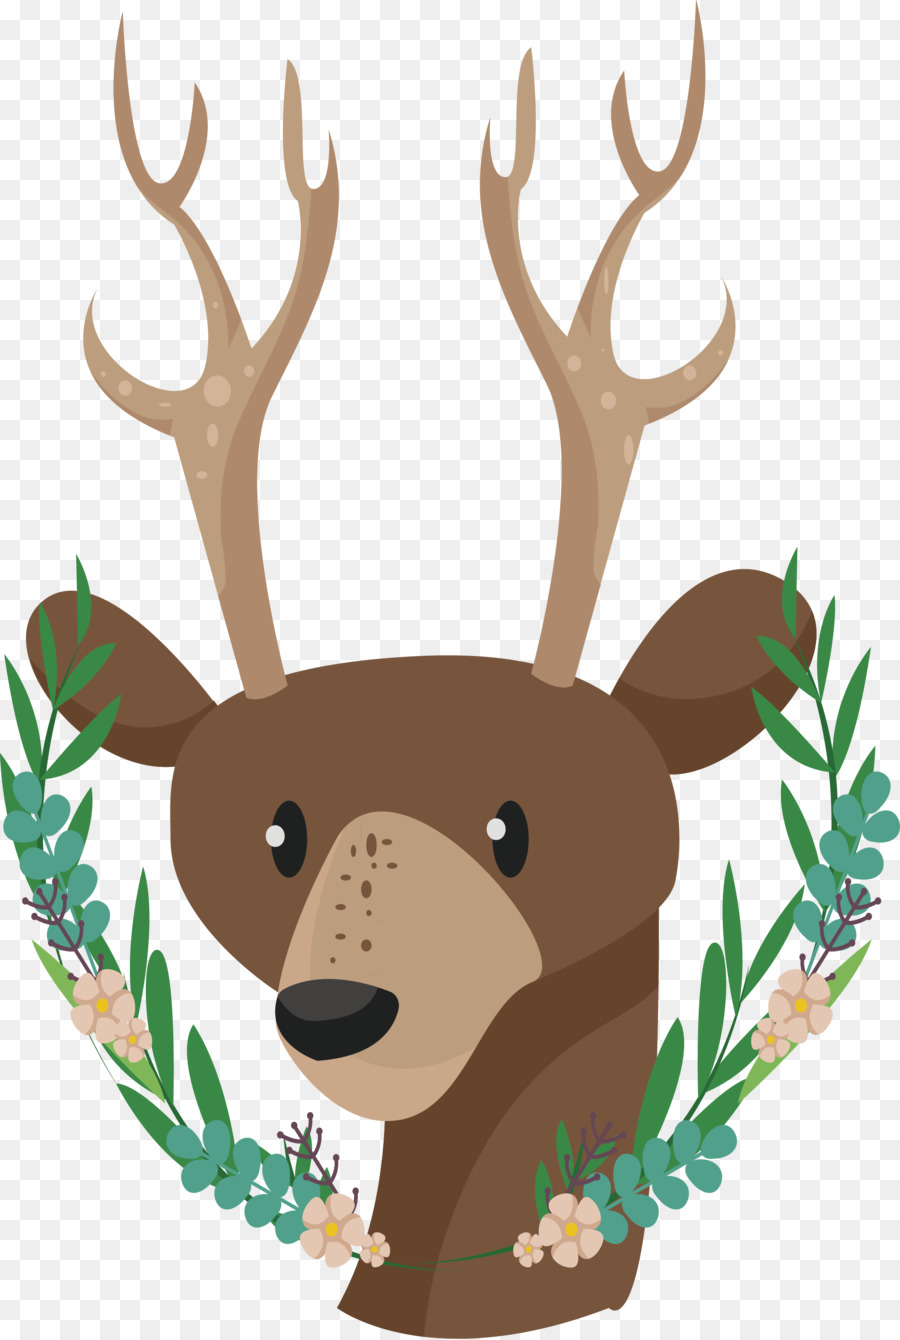 Sika deer clipart graphic Reindeer Cartoon png download - 2135*3176 - Free Transparent ... graphic